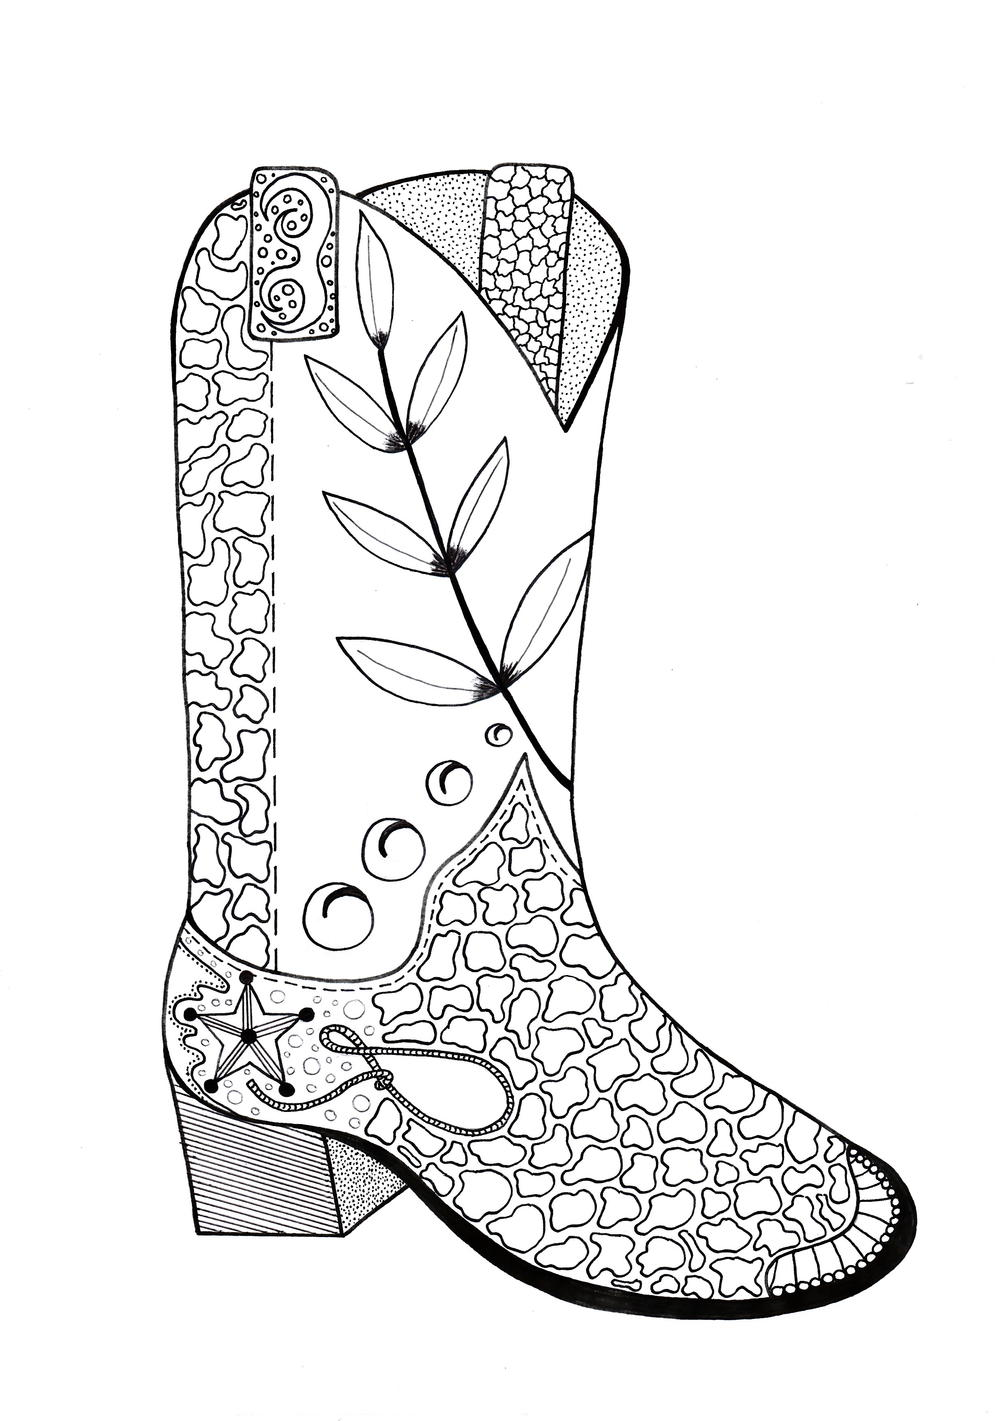 Coloring pictures of cowboy boots - Coloring Pictures Of Cowboy Boots 39